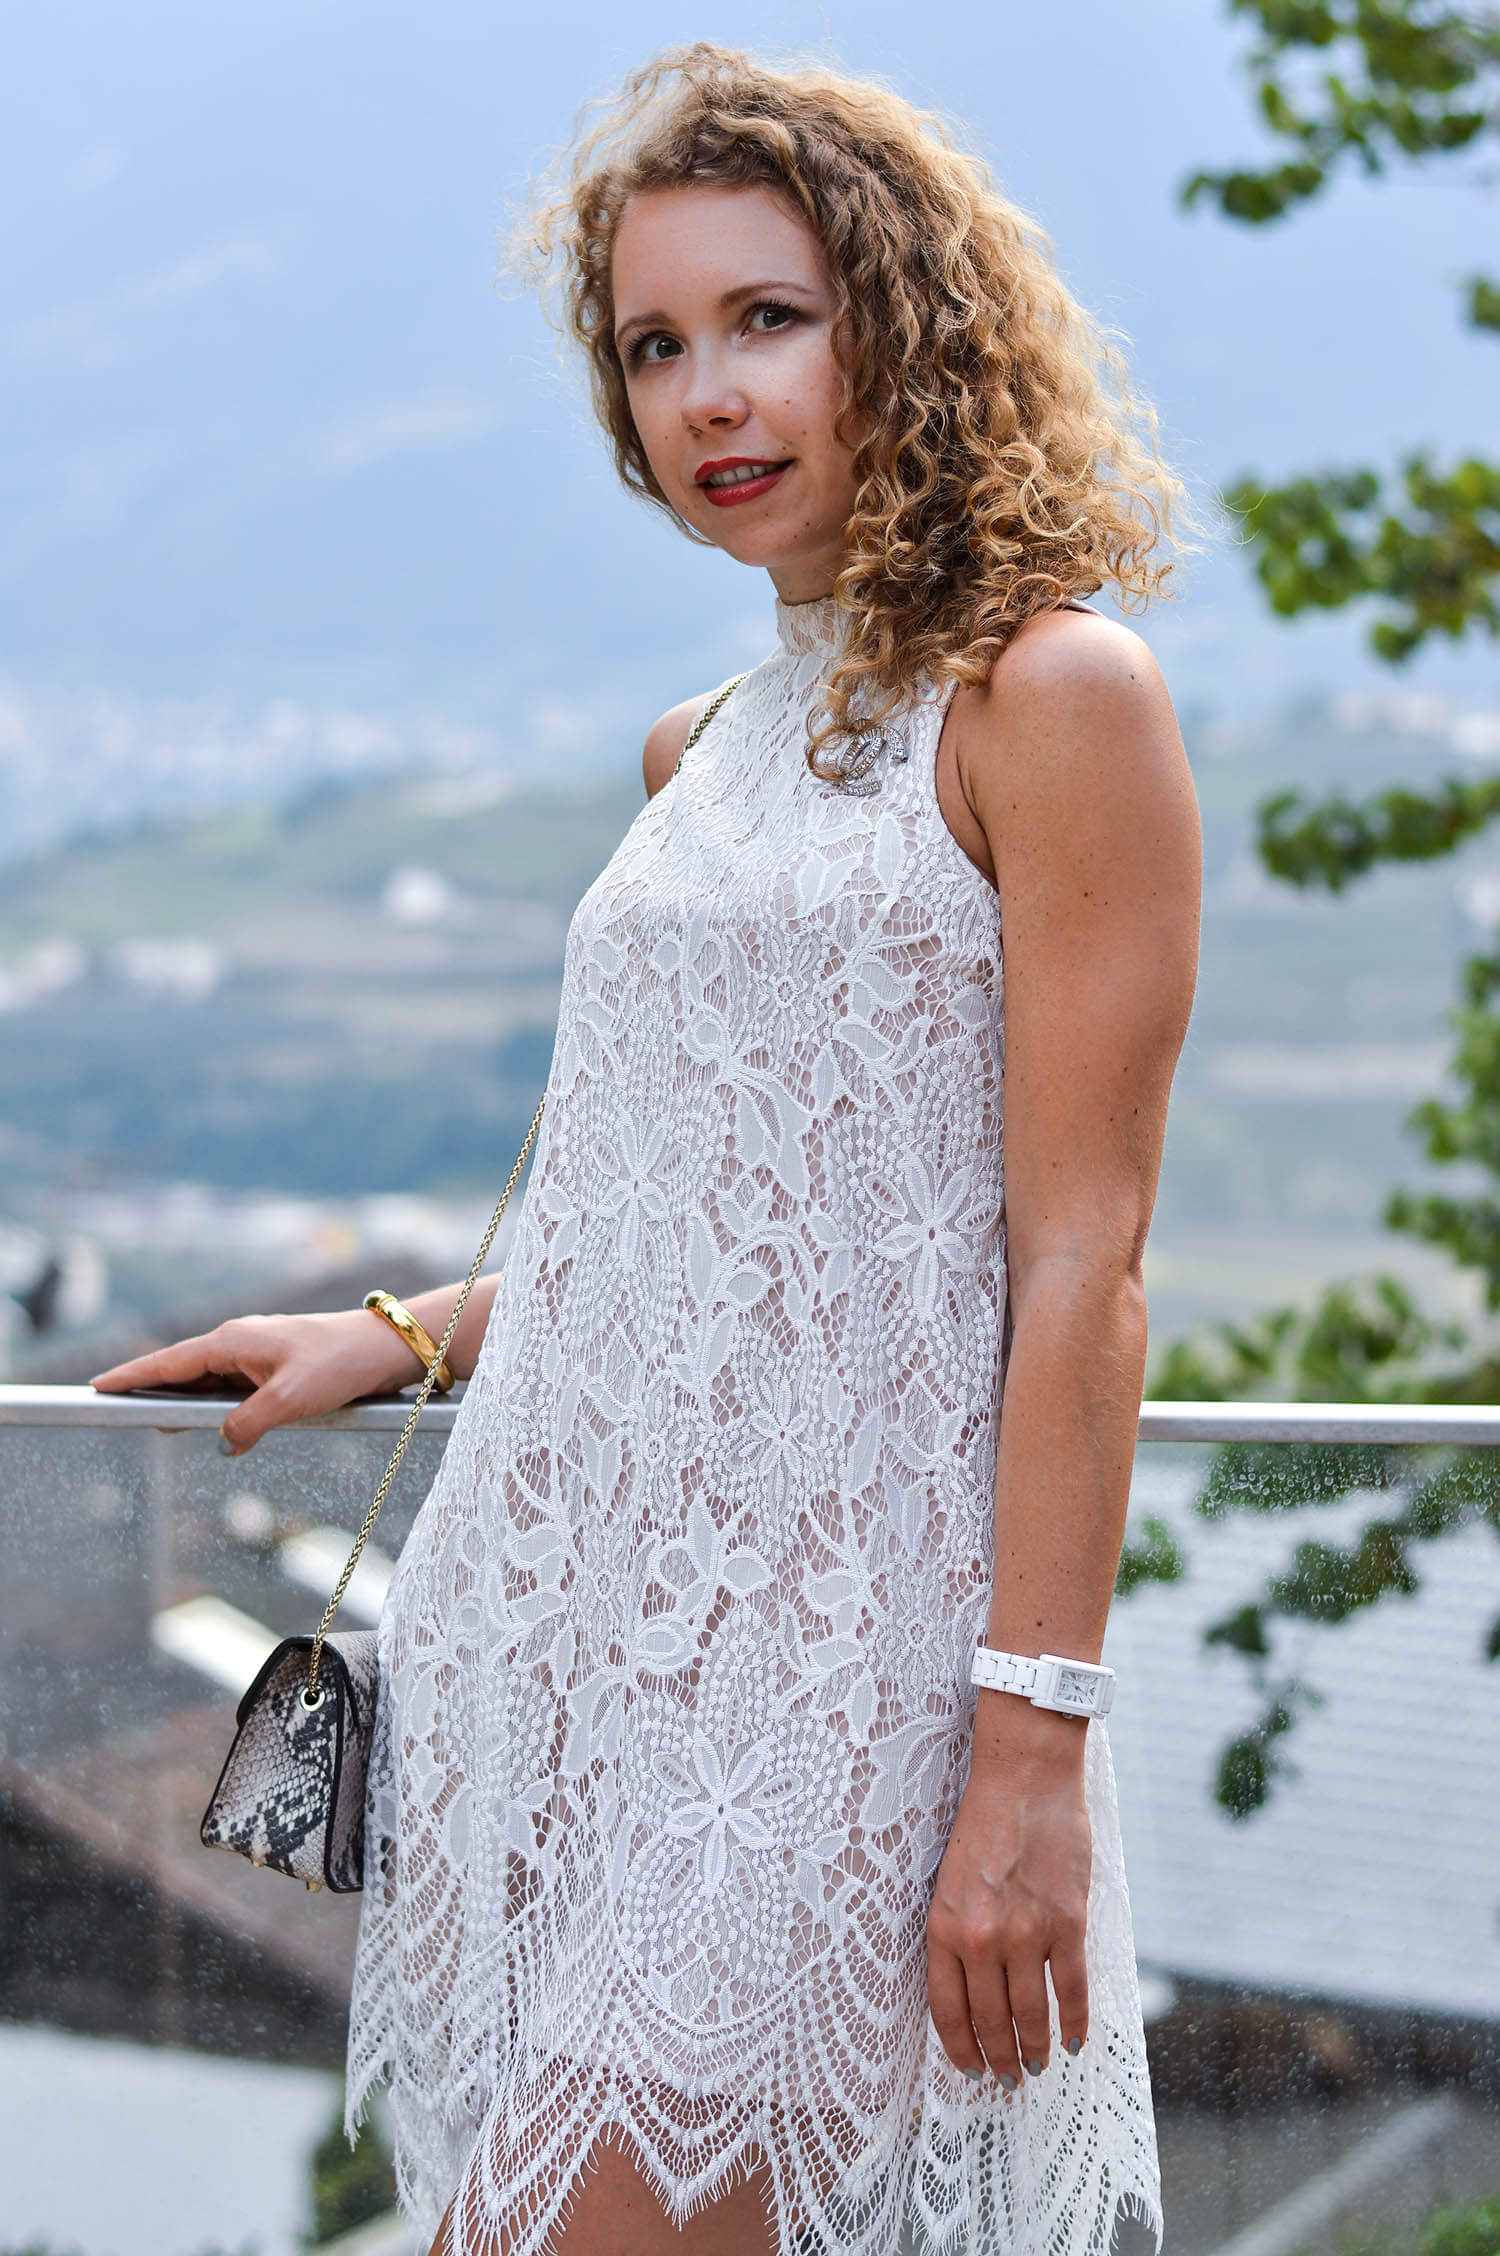 Kationette-fashionblog-Outfit-Lace-Dress-T-Strap-Sandals-Furla-View-South-Tyrol-hotel-hohenwart